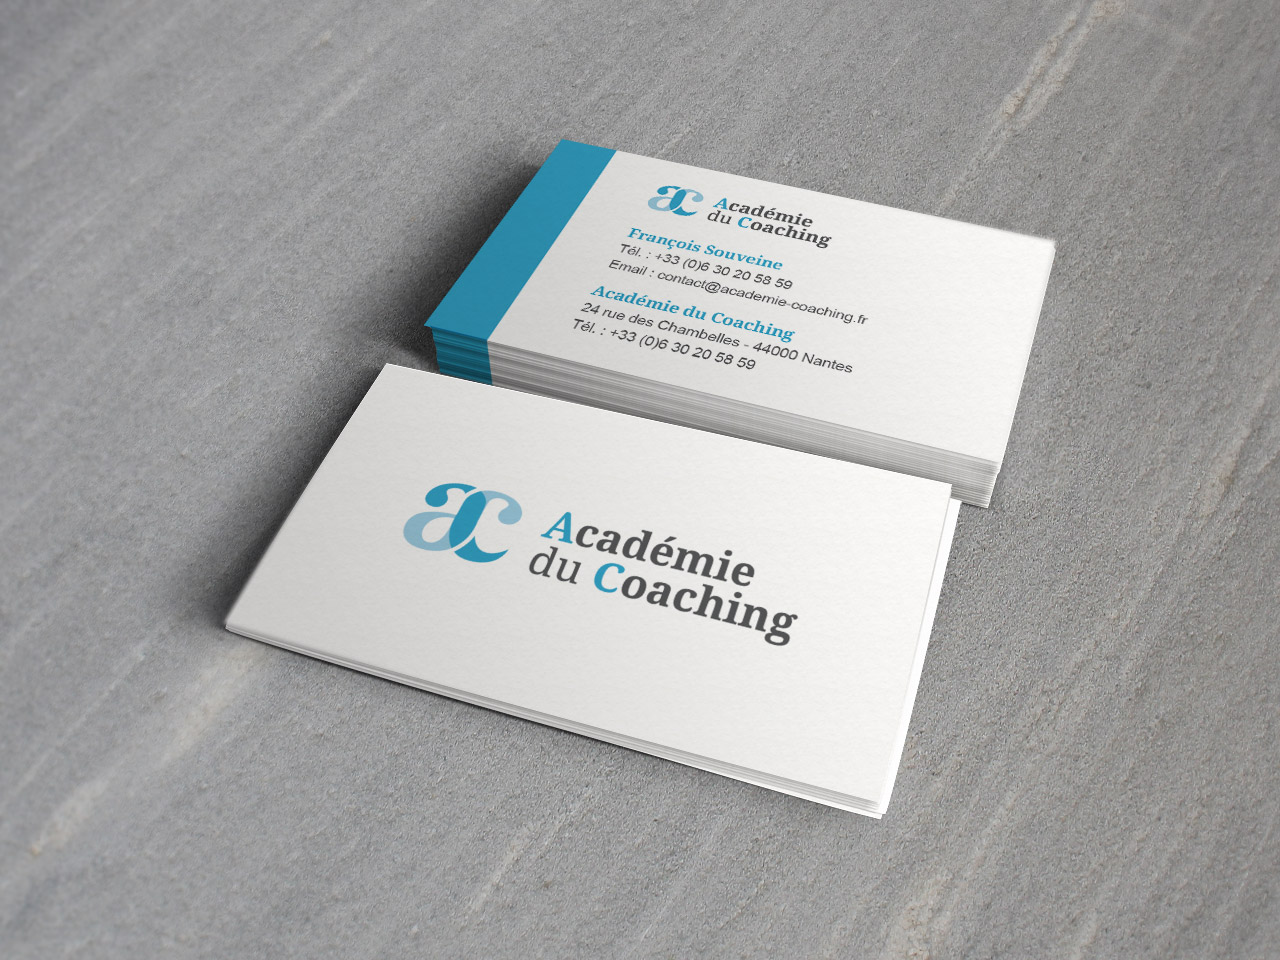 academie-du-coaching-logo-identite-visuelle-carte-creation-communication-caconcept-alexis-cretin-graphiste